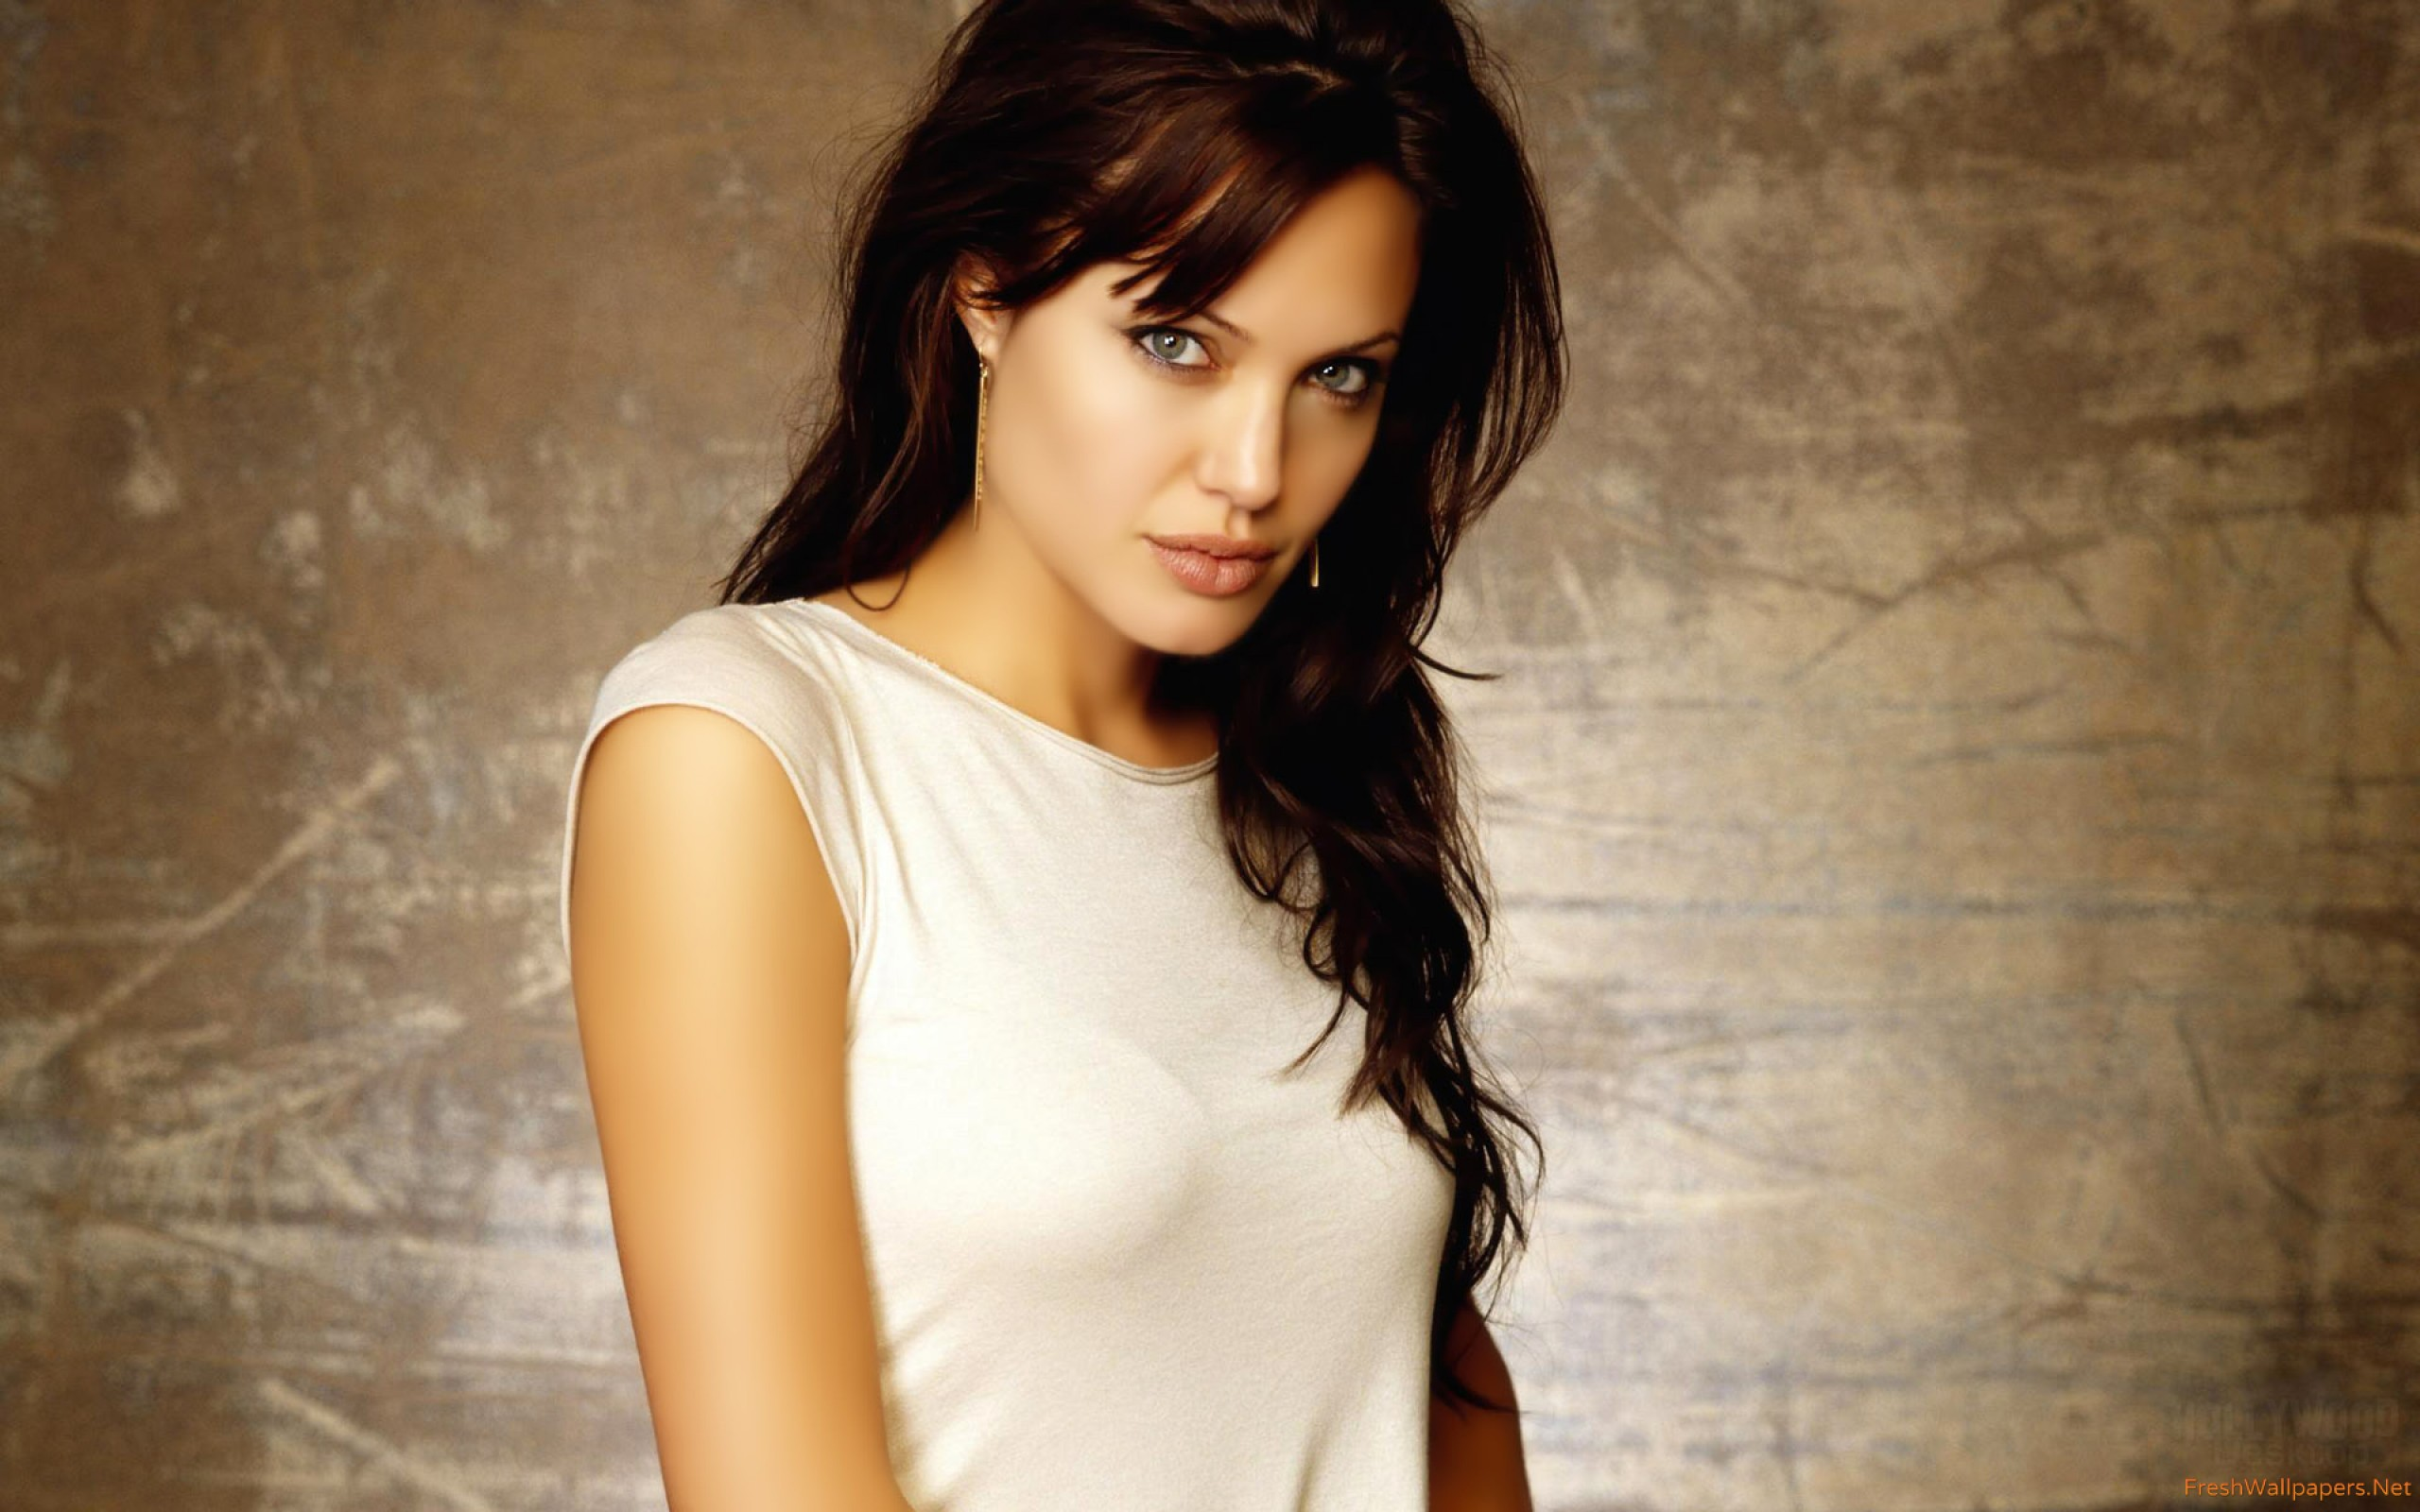 angelina jolie mobo wallpapers Freshwallpapers 2560x1600